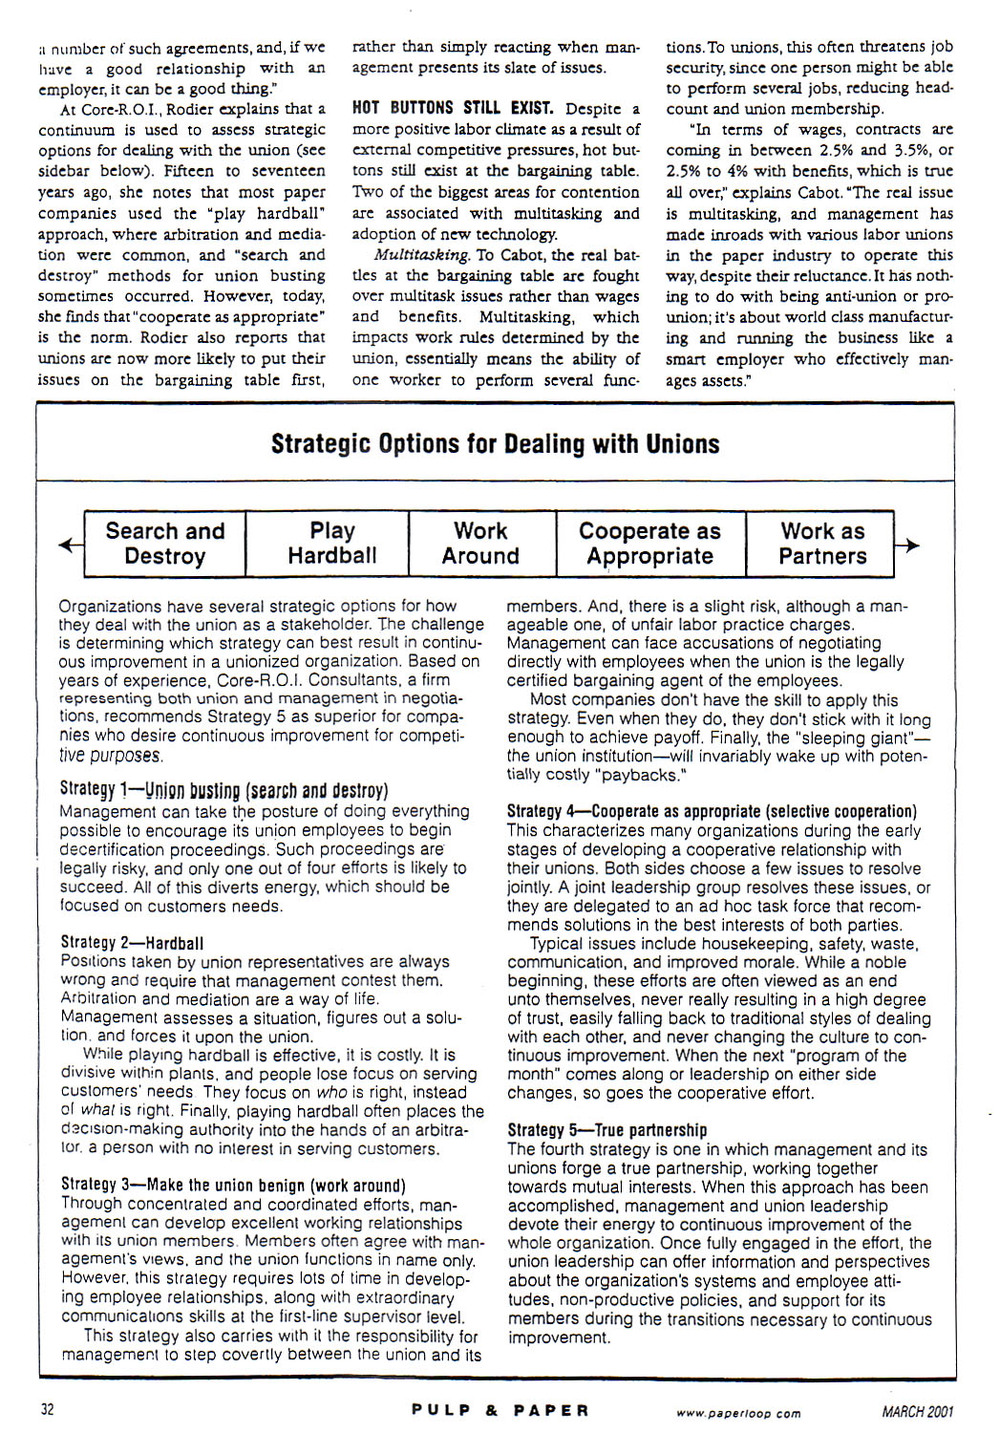 pulp & paper-march 2001-labormanagement build better relations driven by globalization, profitability concerns  page 2.jpg